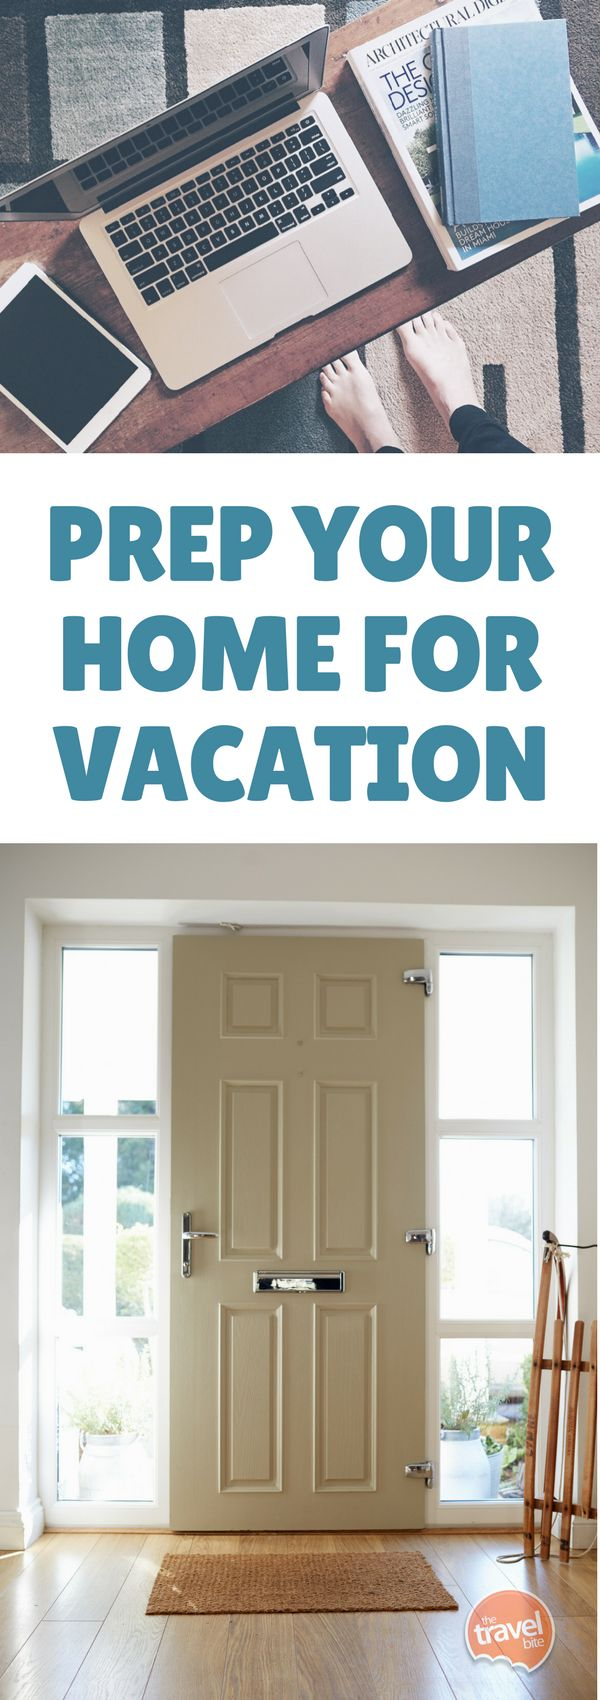 Between packing and last-minute travel planning, it is sometimes easy to forget that you should prep your home for vacation too.  But just a little work ahead of time will help bring you peace of mind while away. Here's a great checklist to go through the week before your travel. From filling your freezer with a few of your favorite foods, to tips for home security, here's our home prep checklist. #travel #traveltips #packingtips